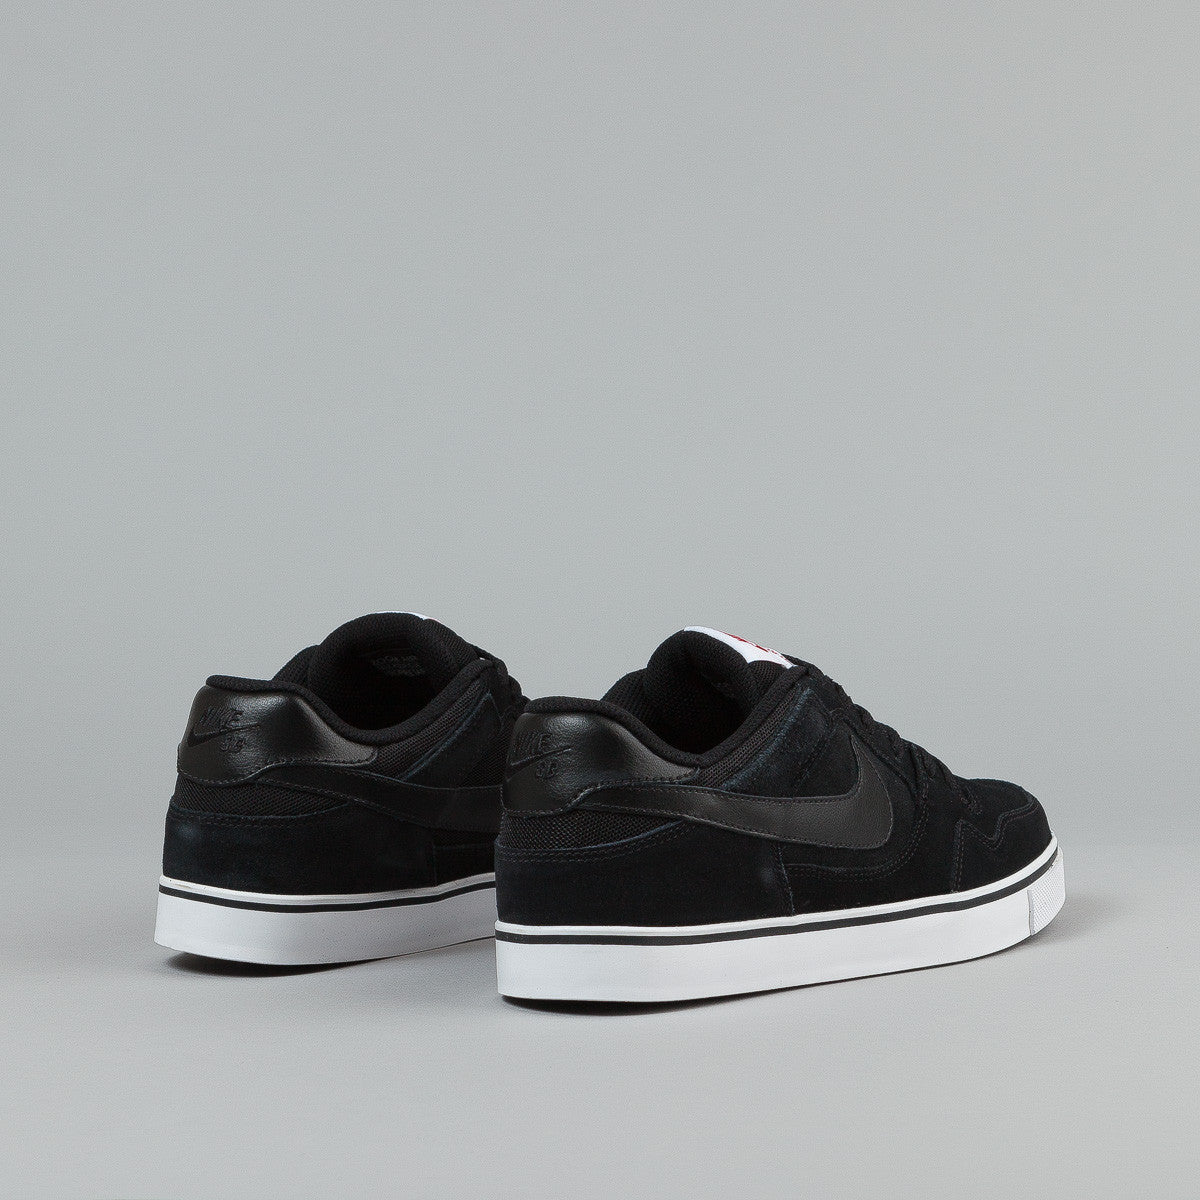 Nike SB Paul Rodriguez 2.5 Shoes - Black / Black